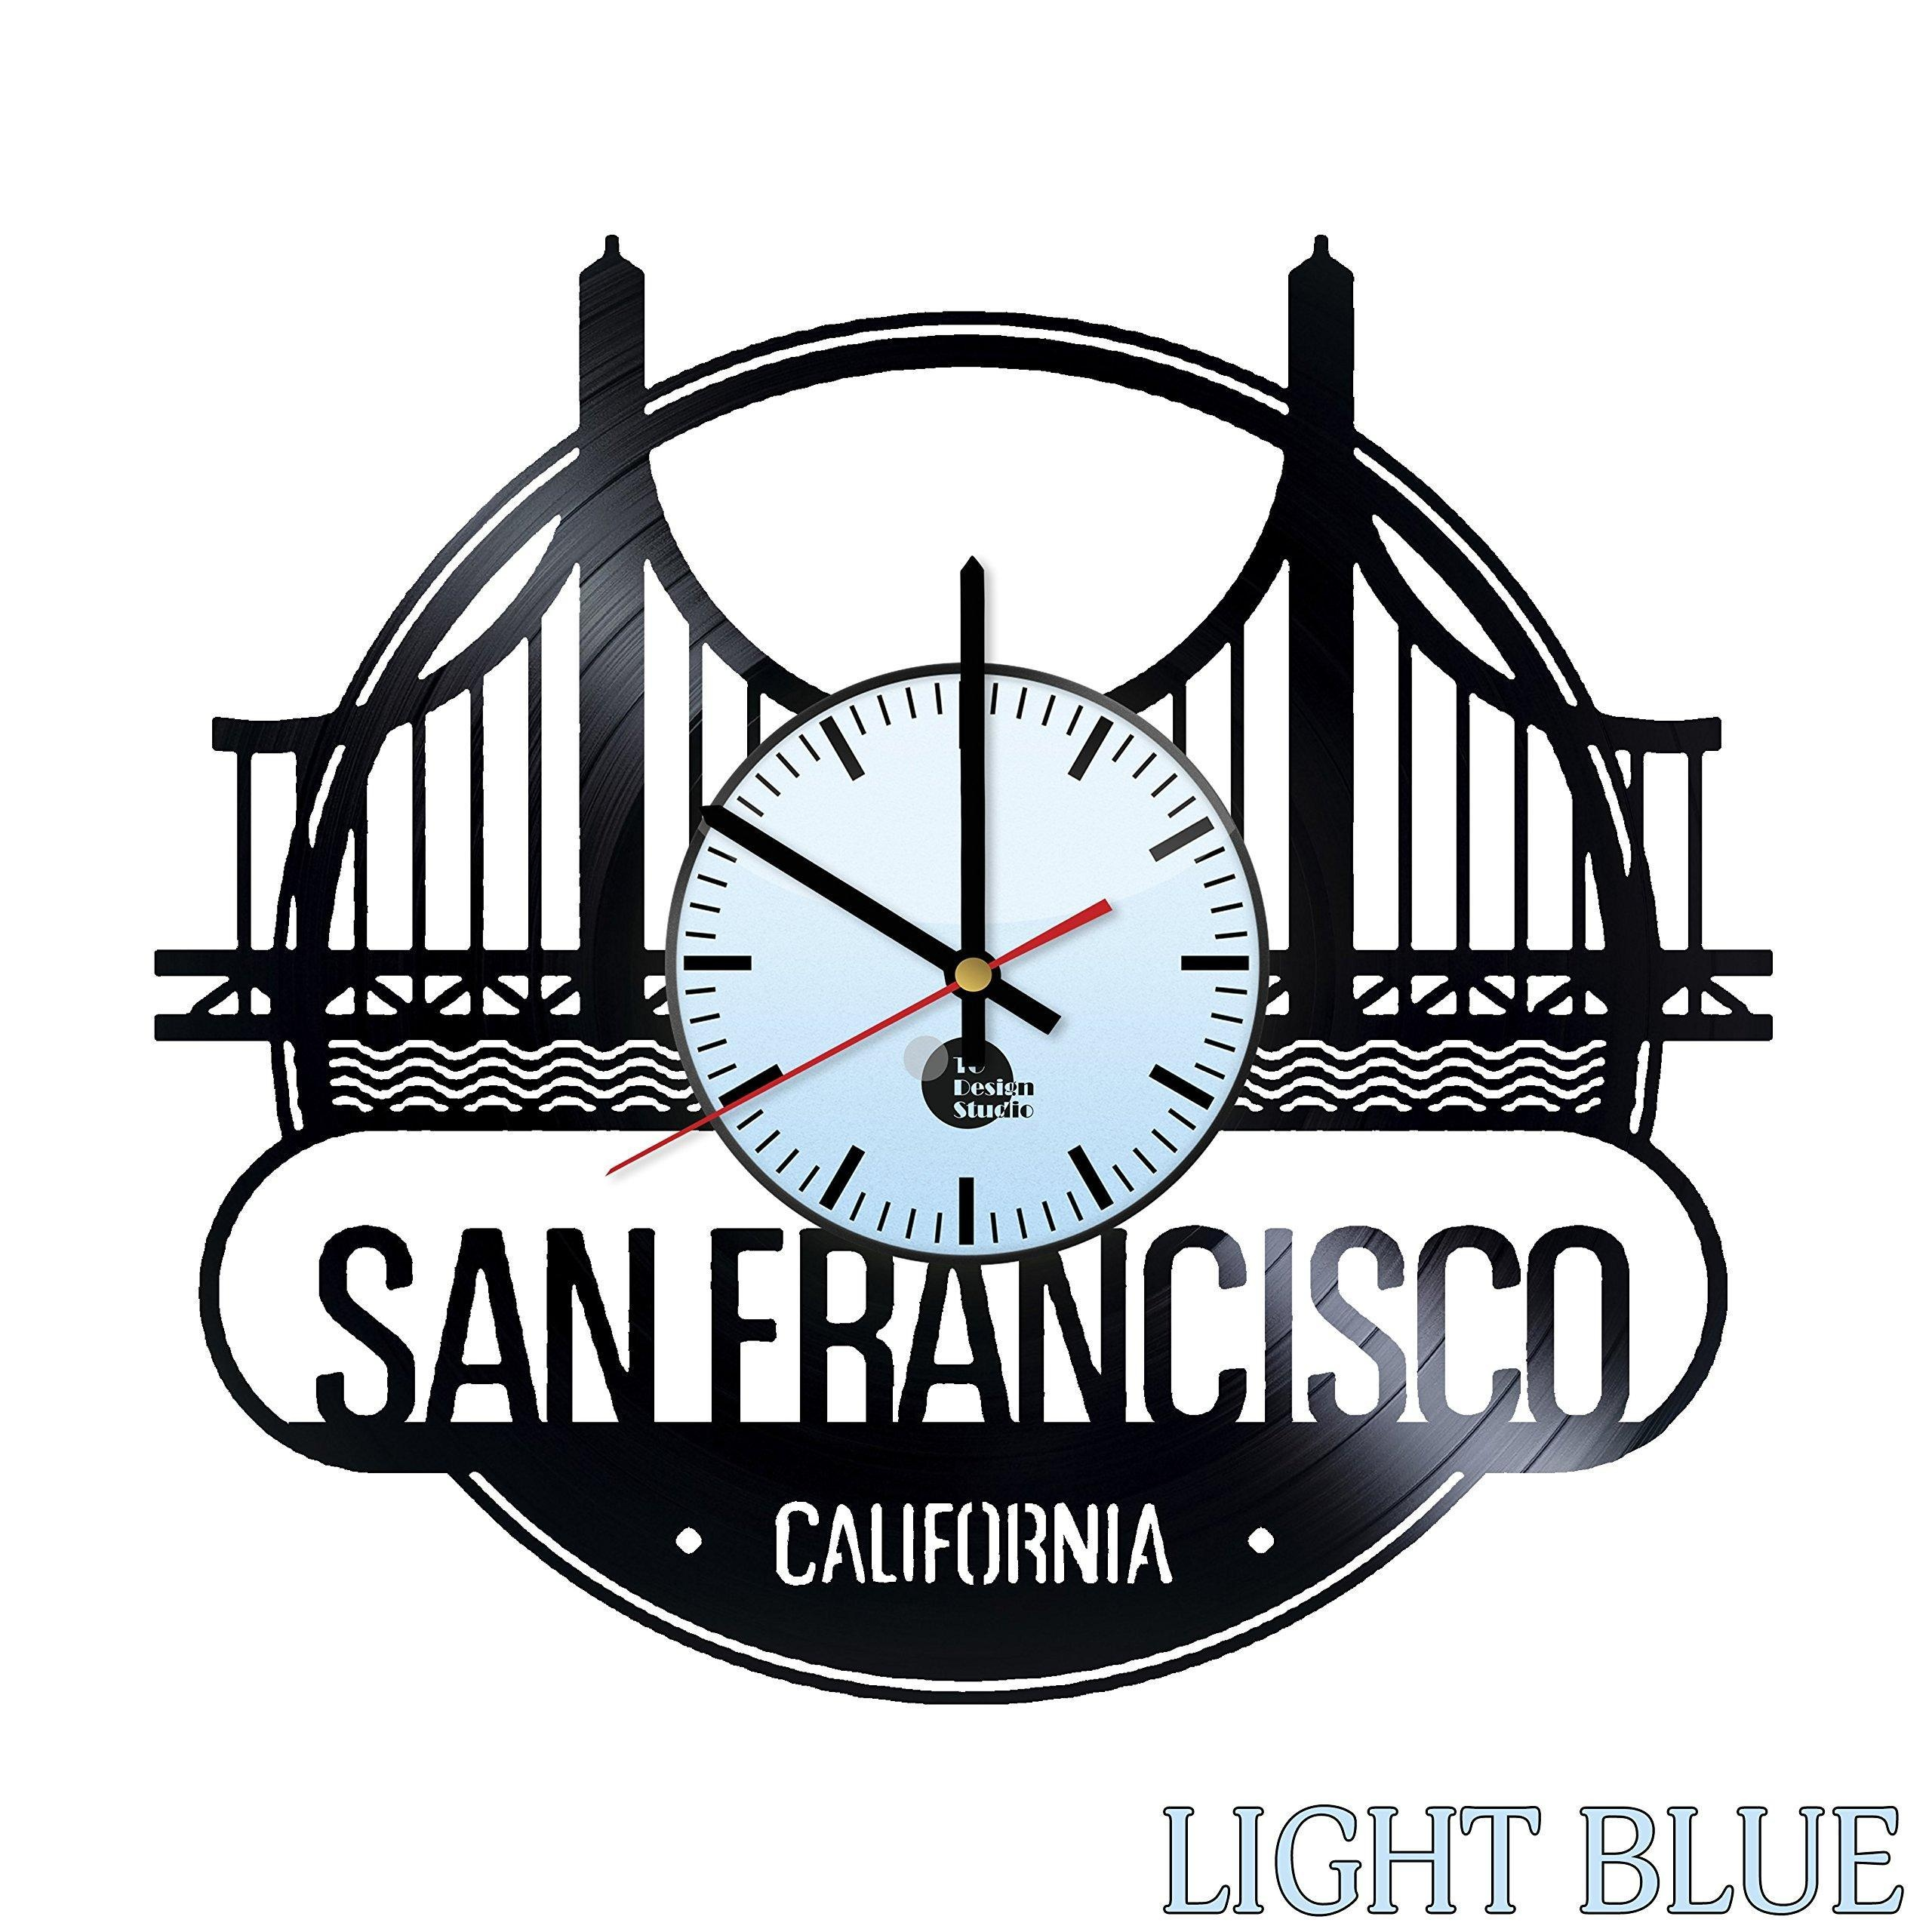 online store san francisco state vinyl record wall clock